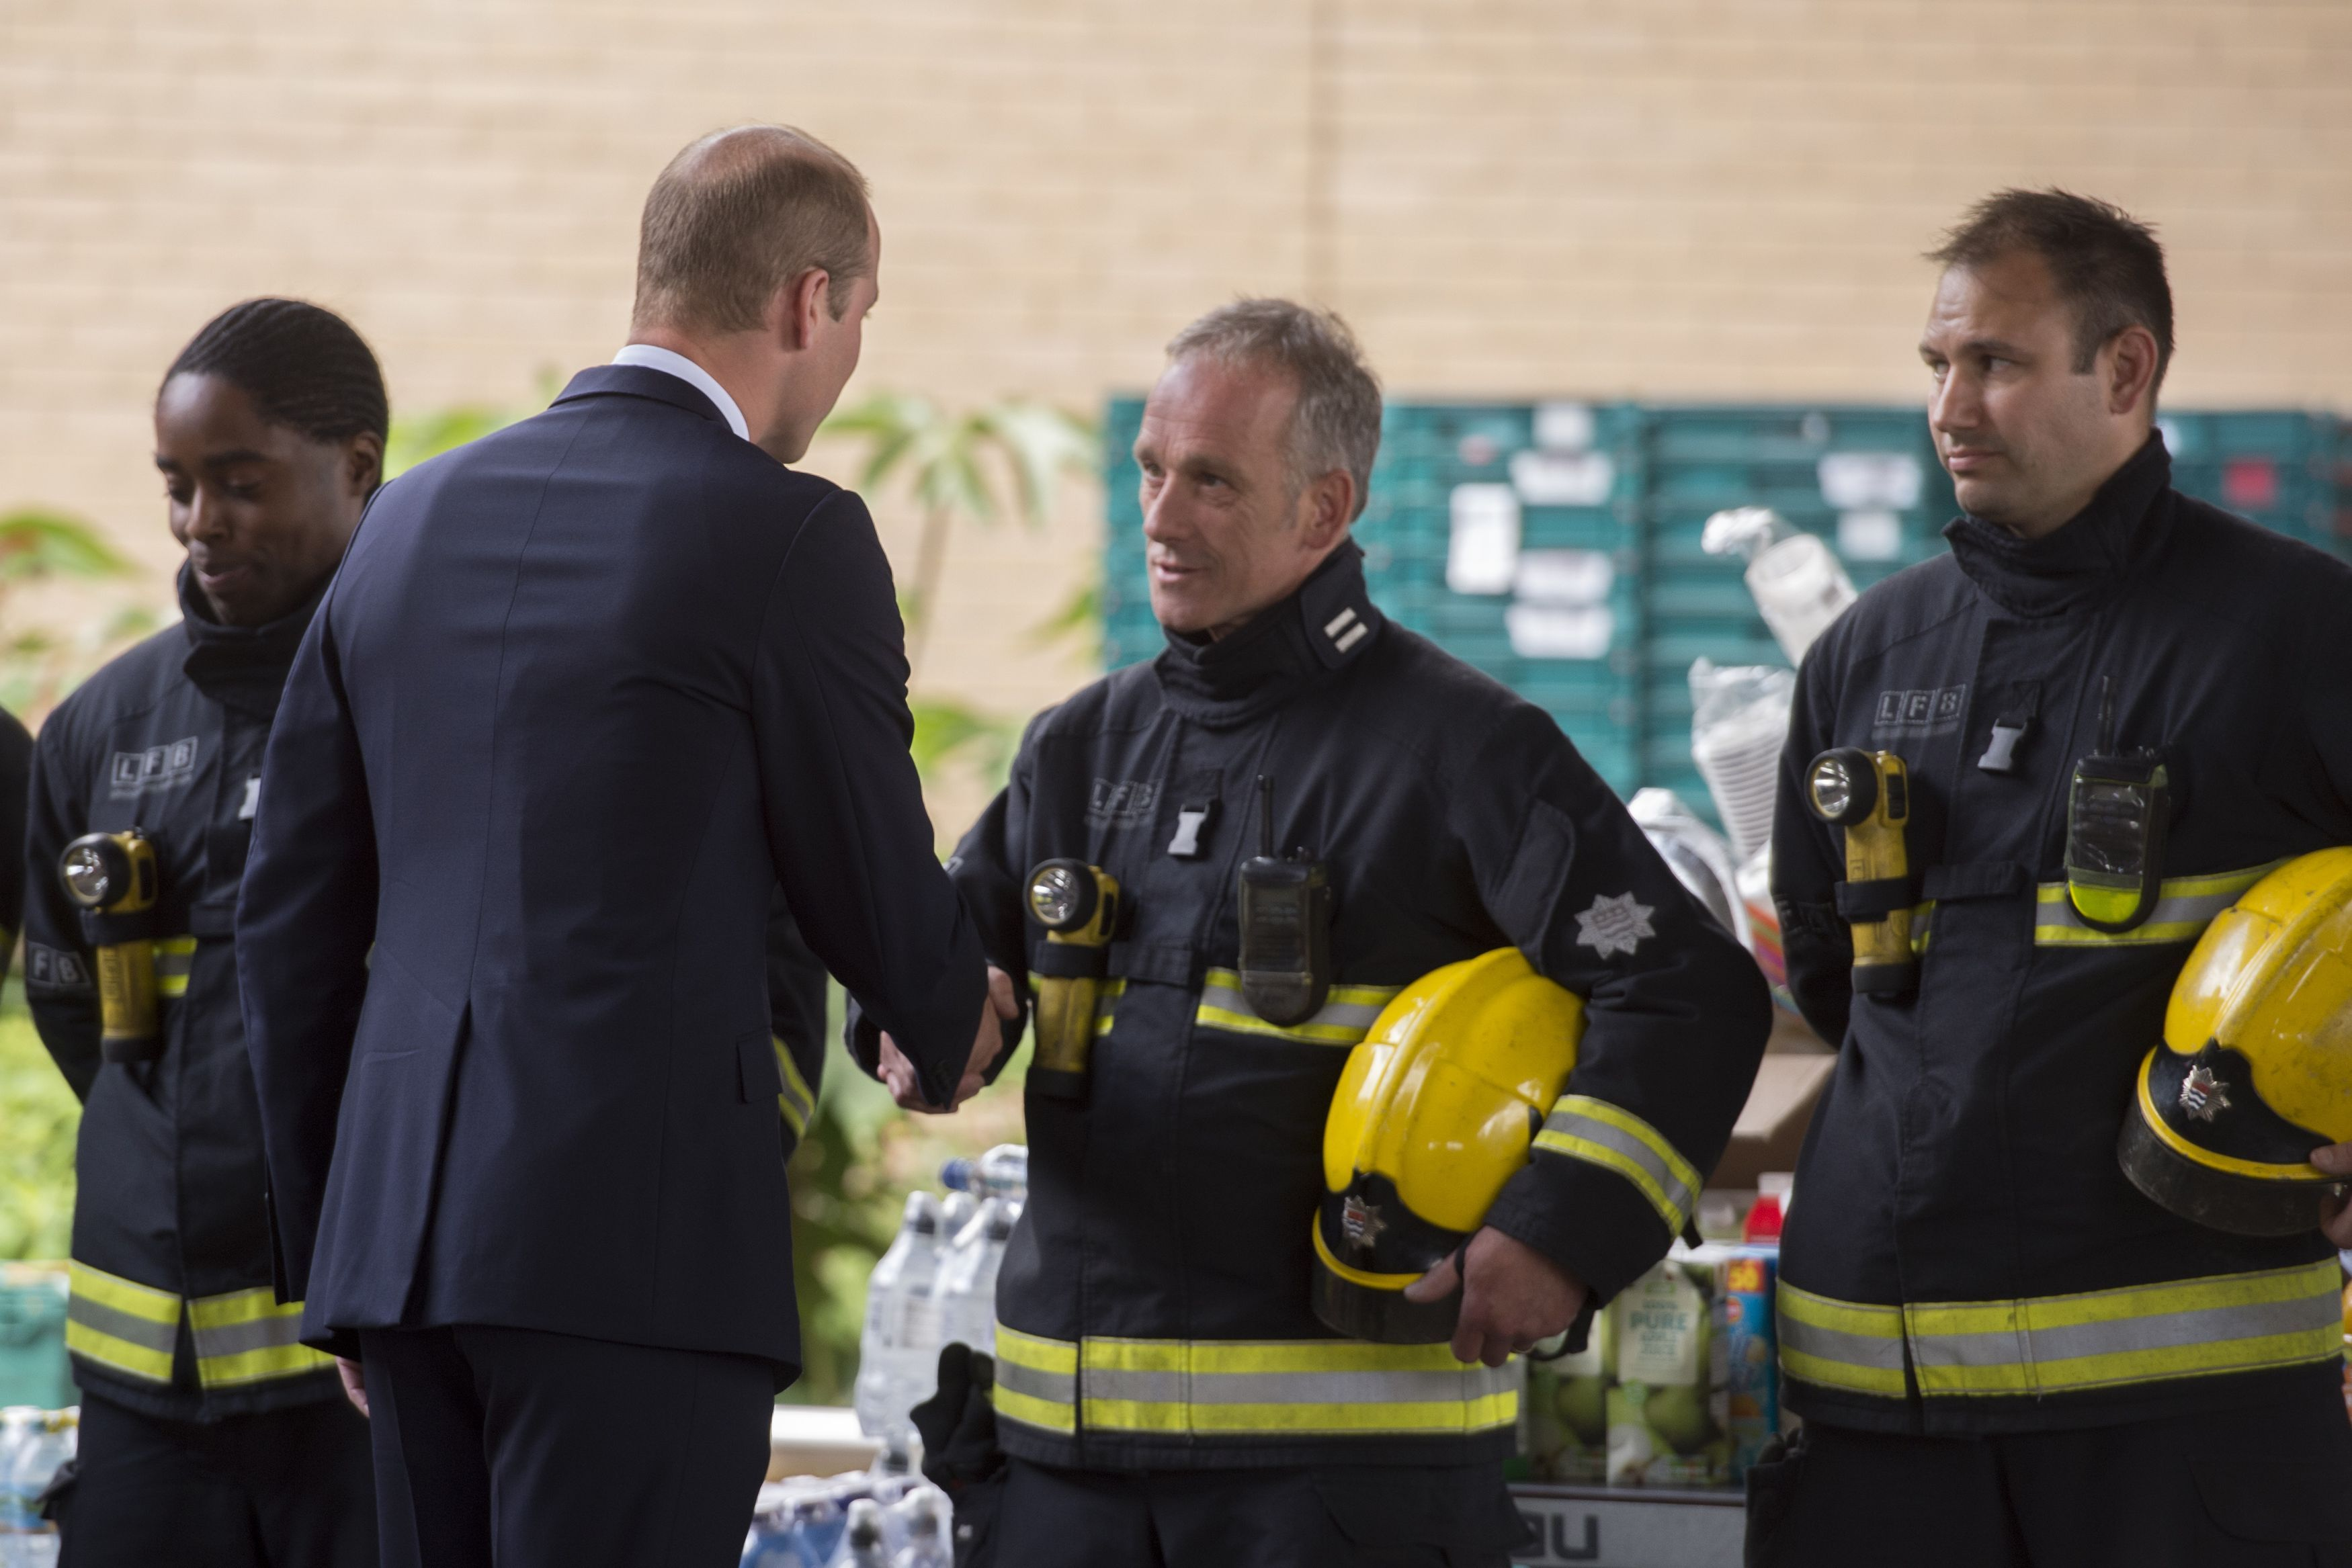 The Duke of Cambridge meets the fire service